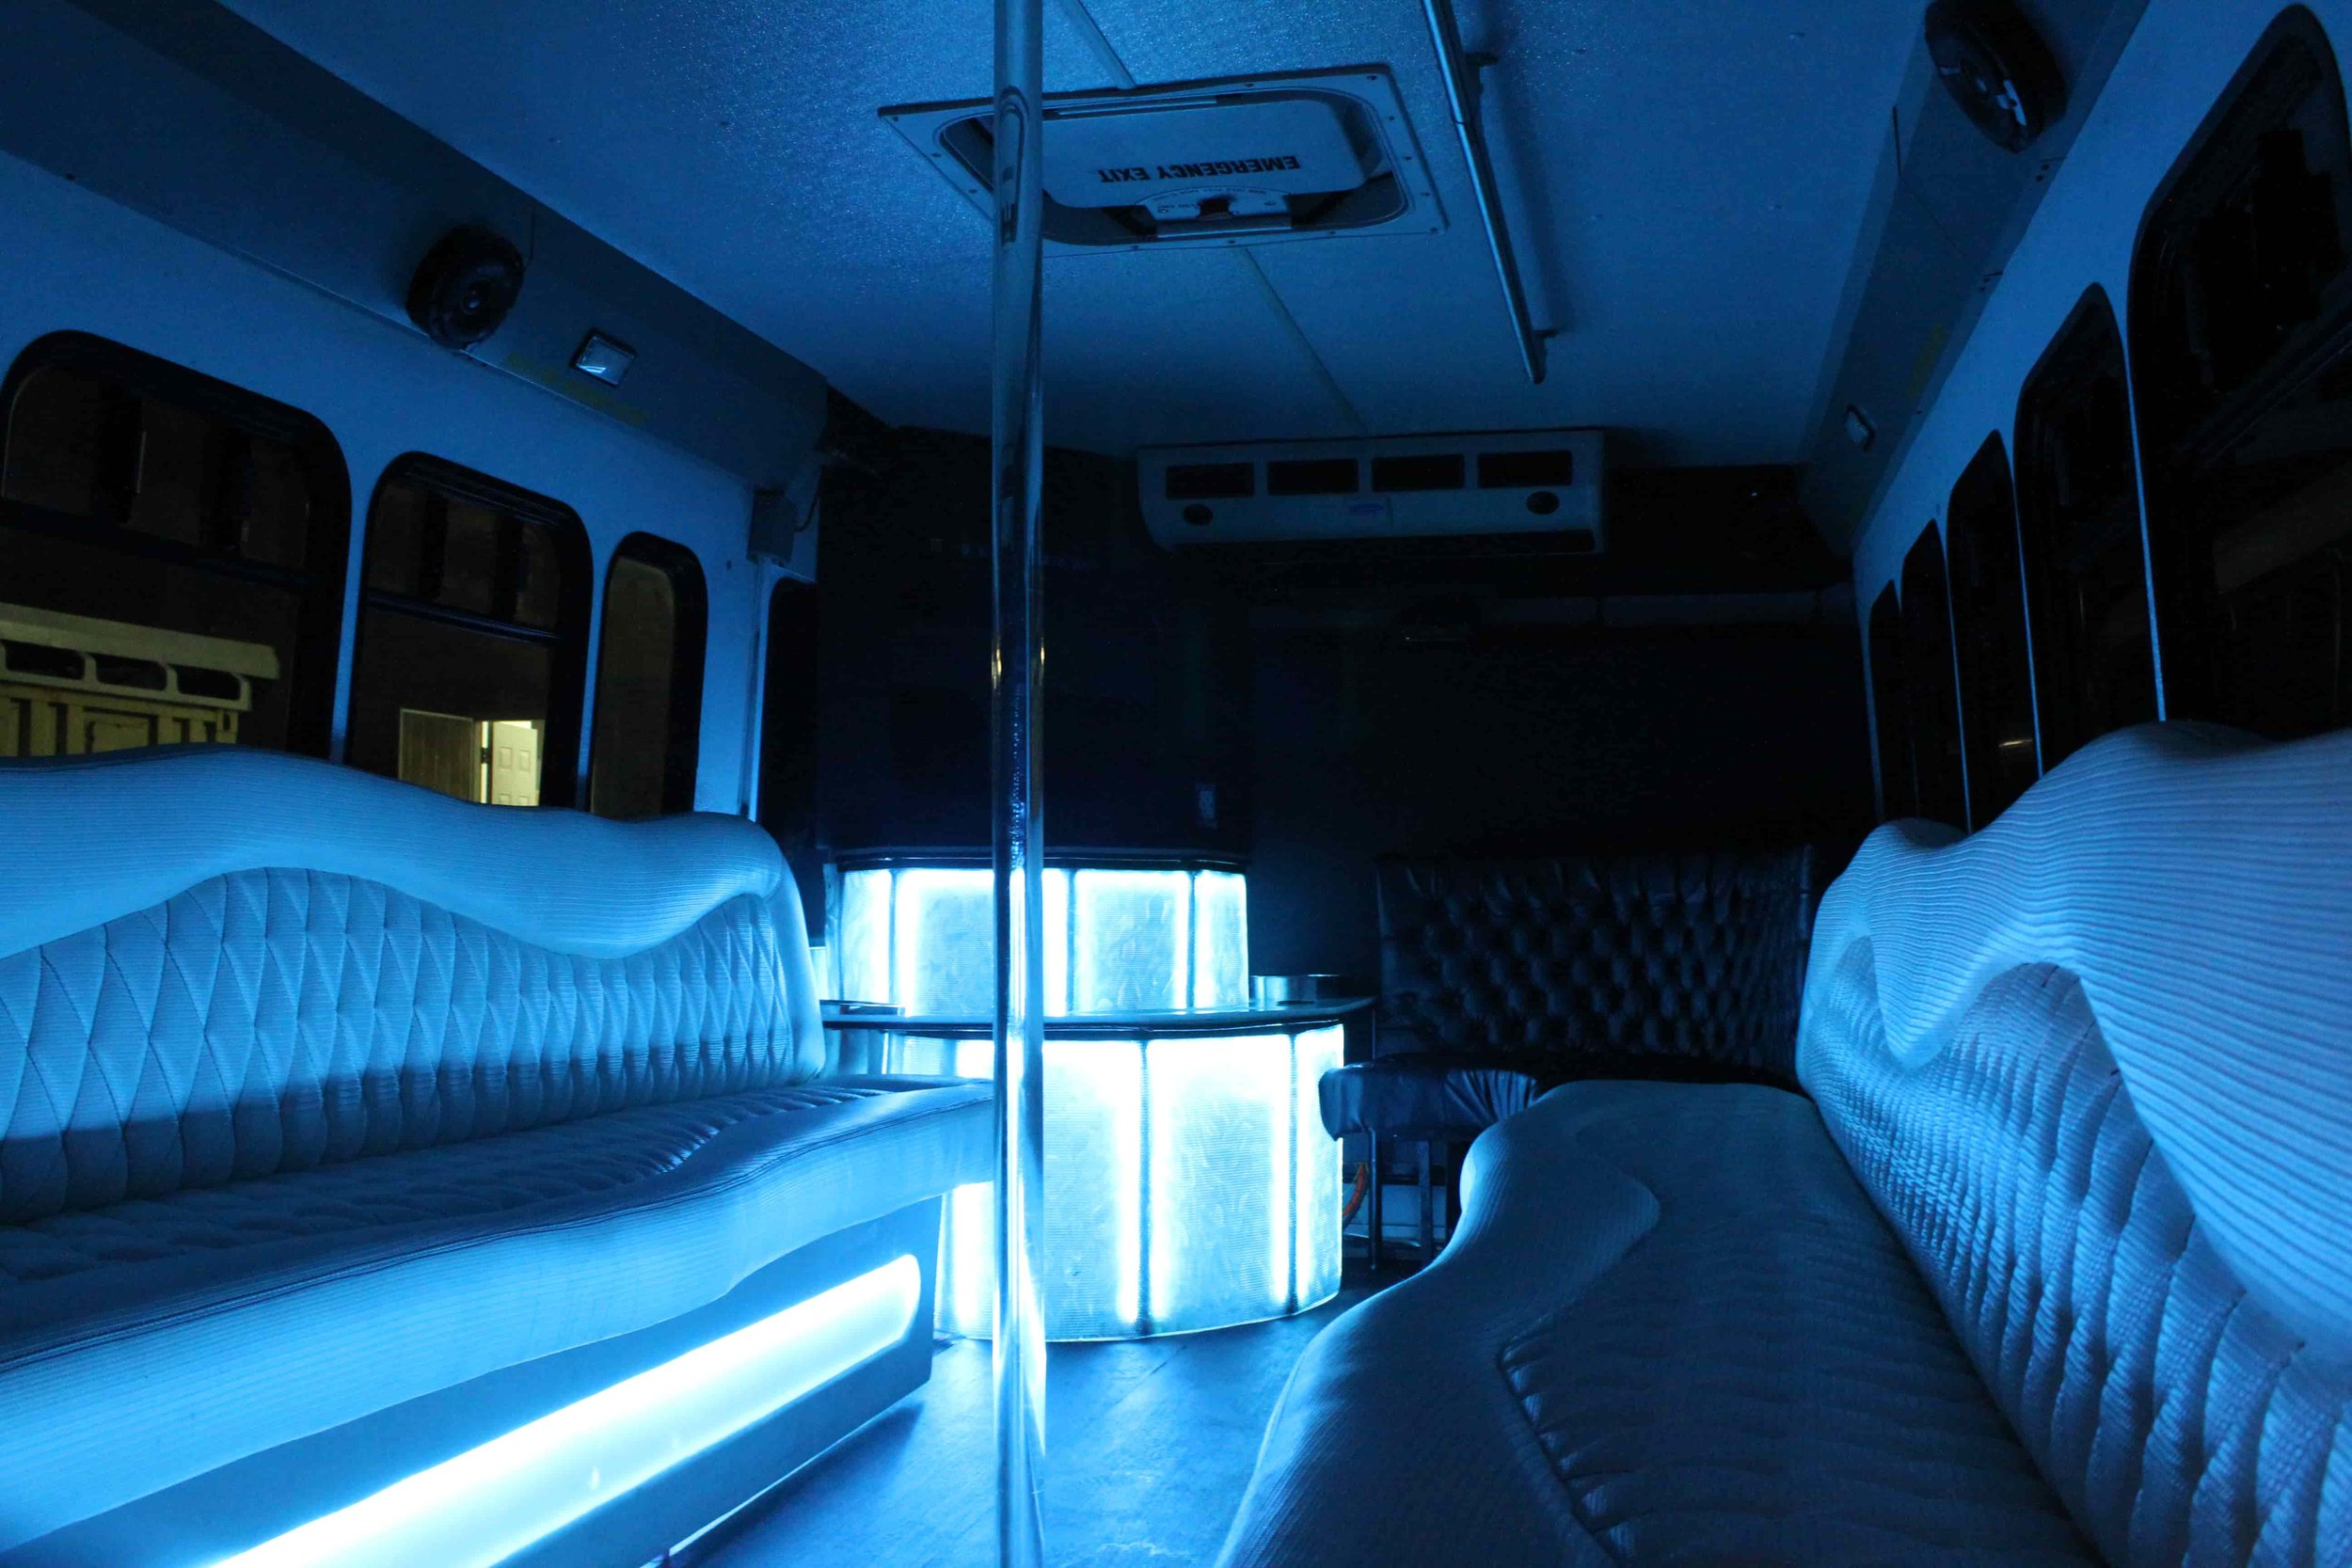 Low Angle Interior Shot with Blue Lights illuminating Environment